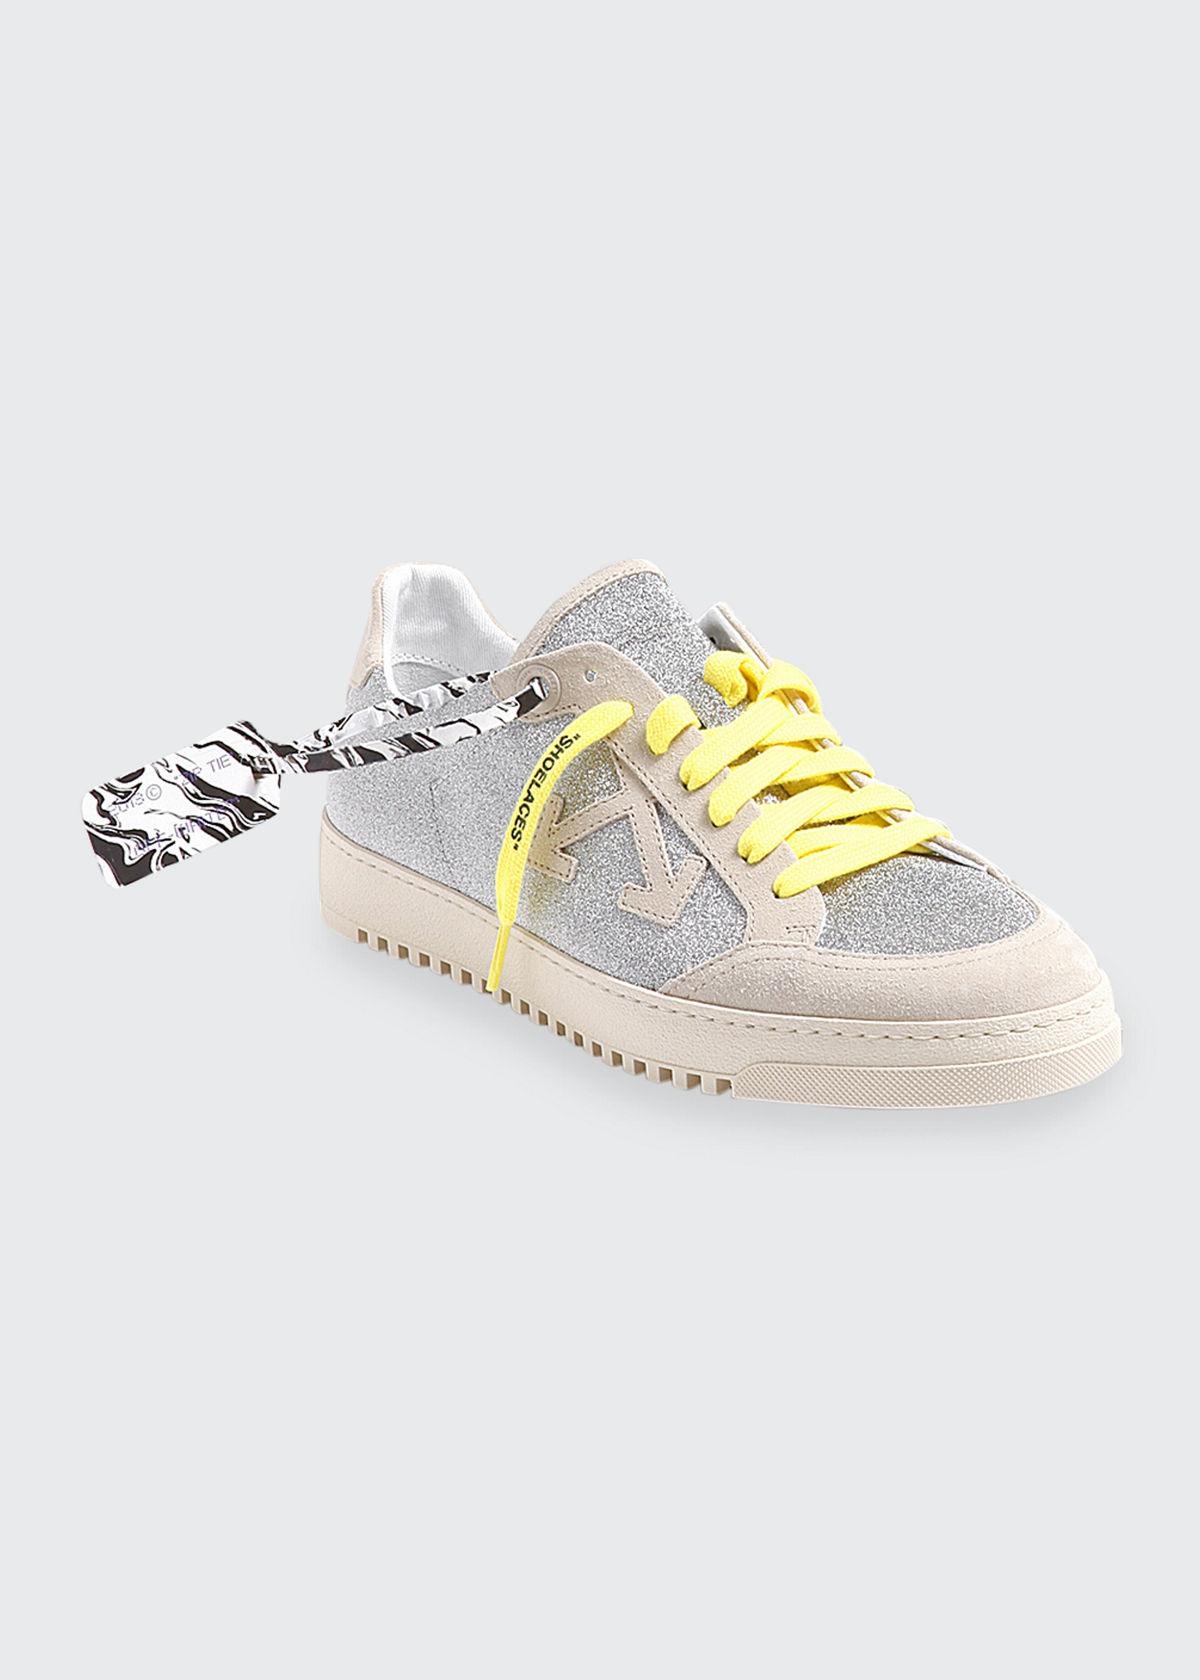 Off-White MEN'S 2.0 GLITTER & SUEDE SNEAKERS